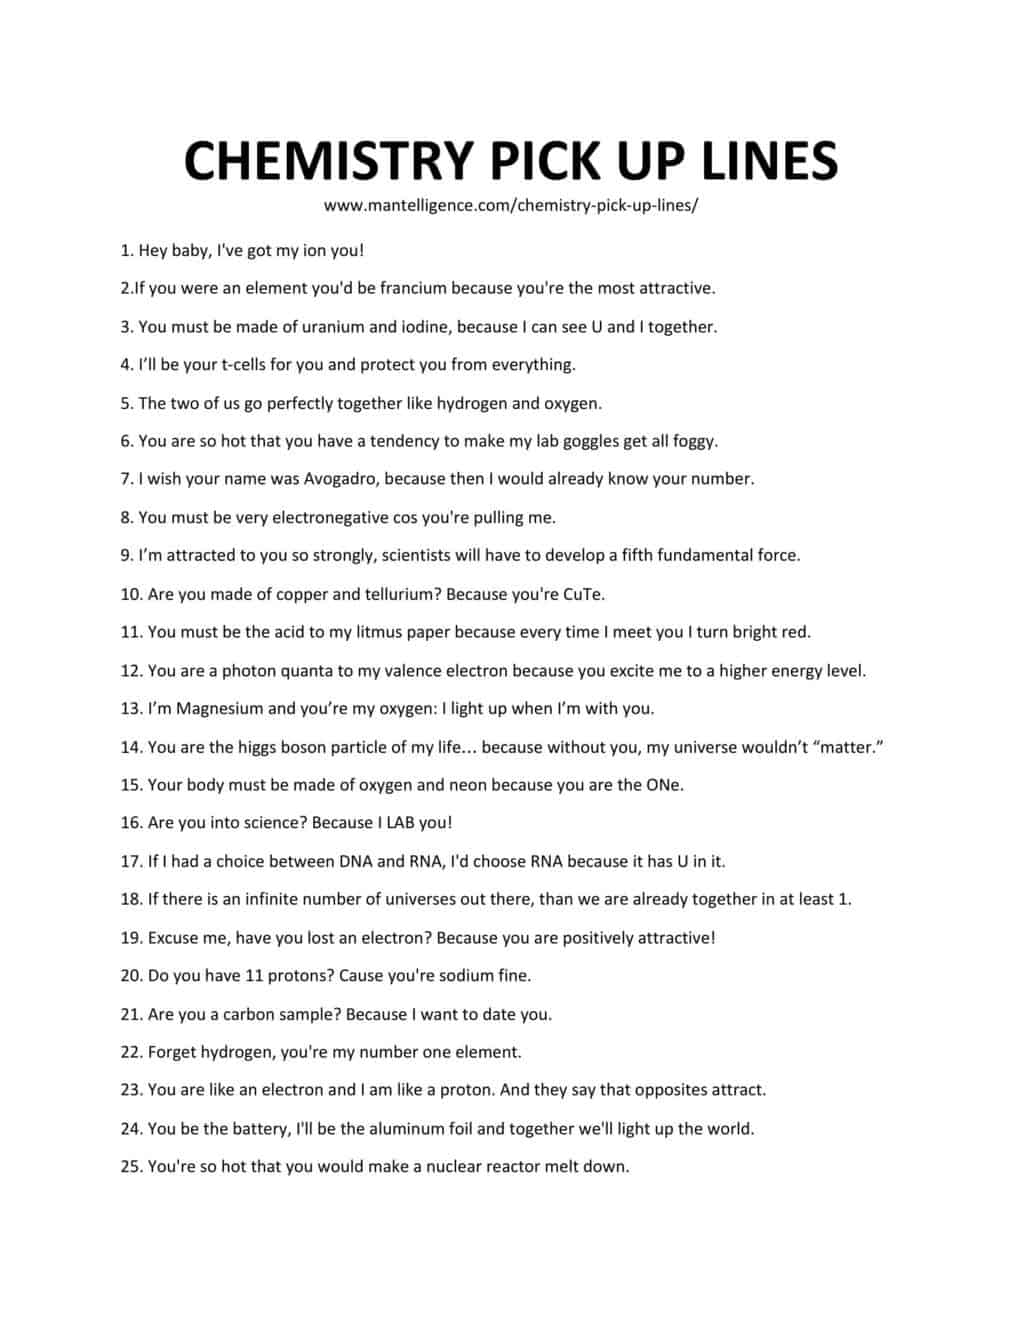 Downloadable and printable jpg/pdf list of chemistry pick up lines